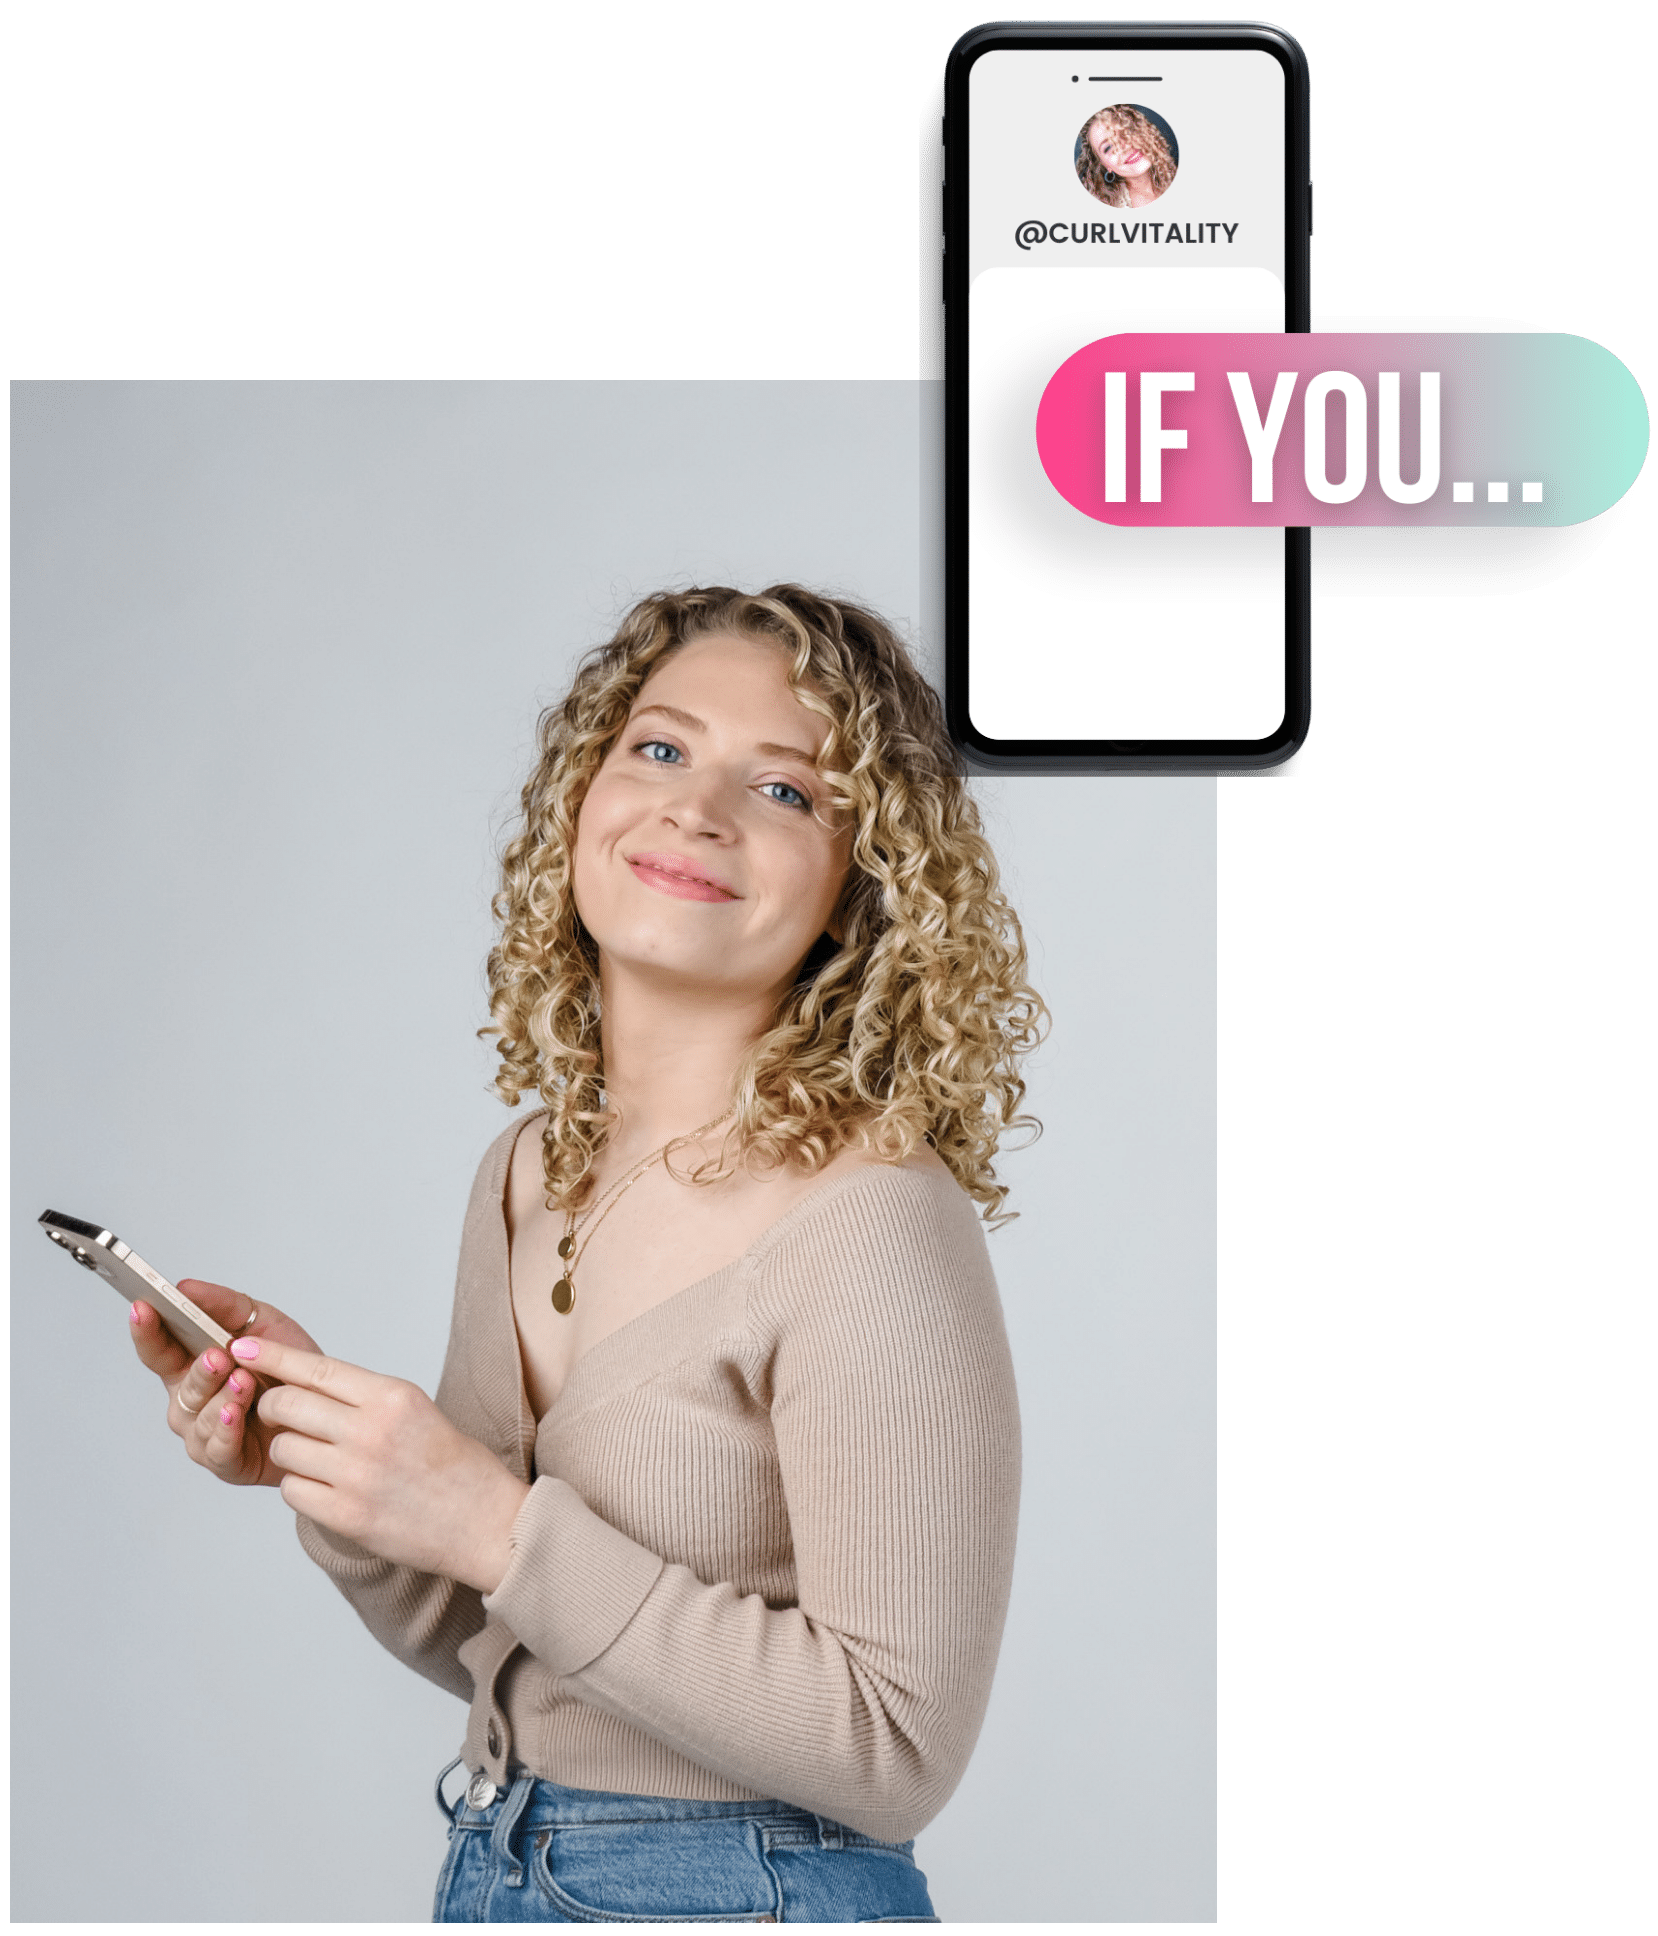 if you.... phone text